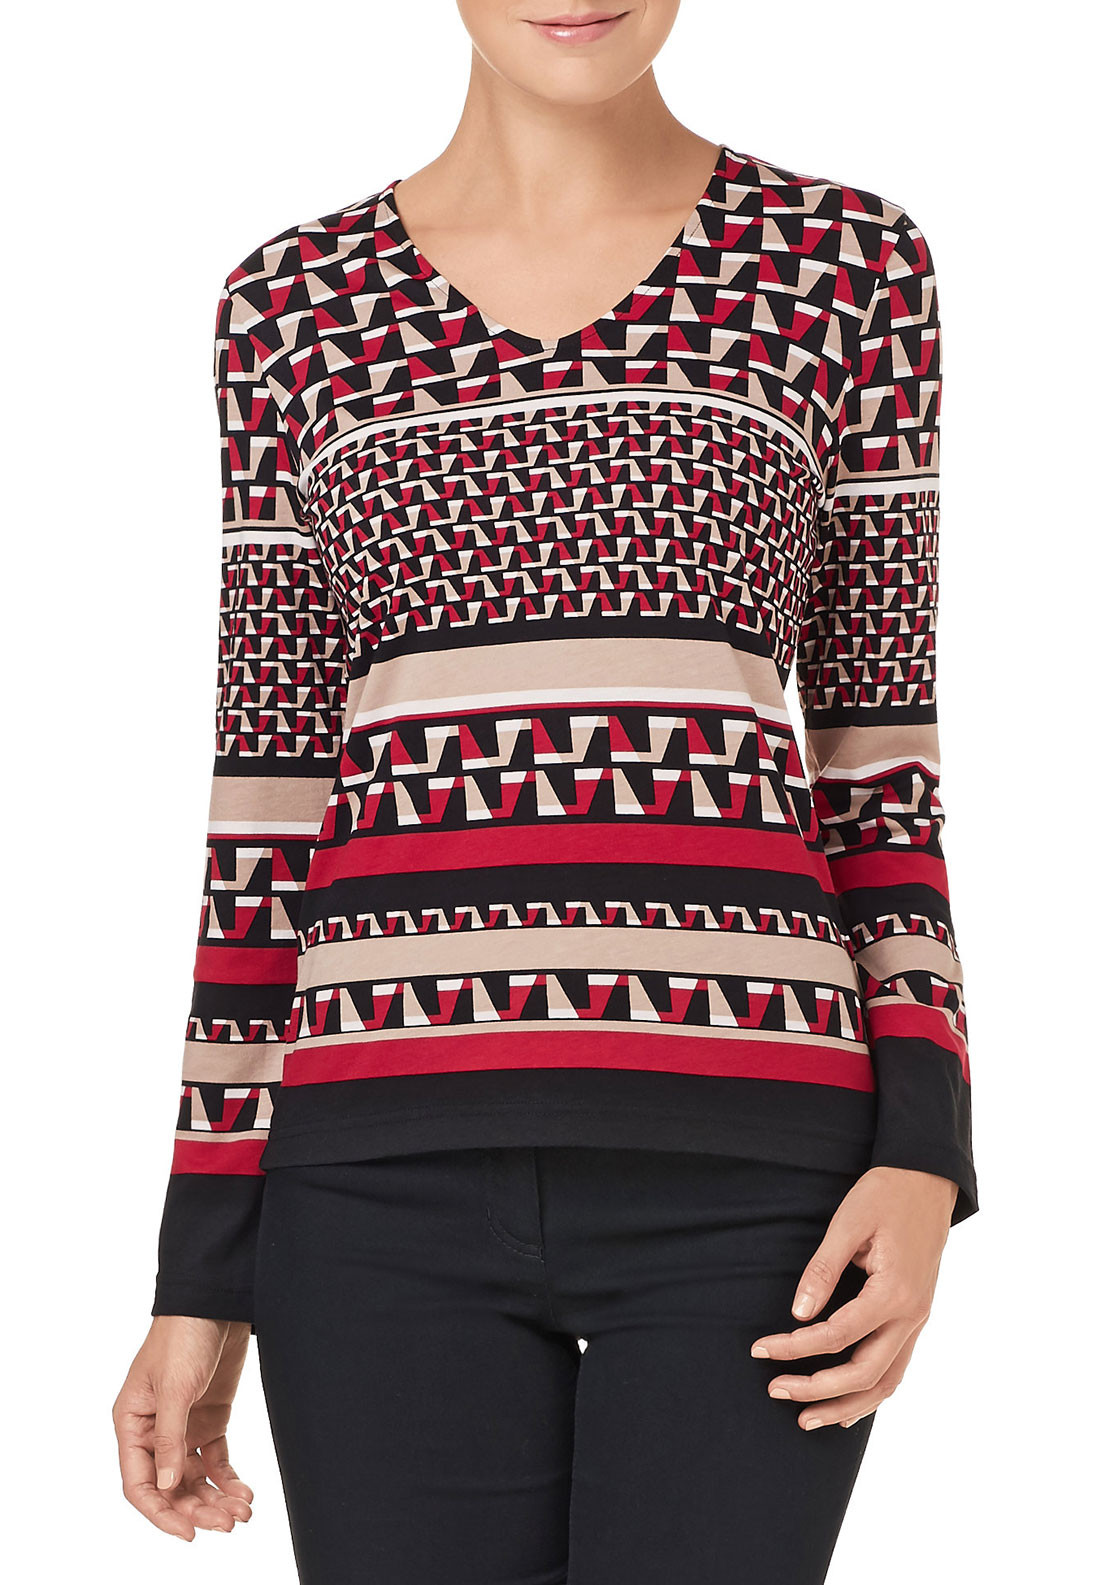 Gerry Weber Geometric Print V-Neck Top, Red Multi